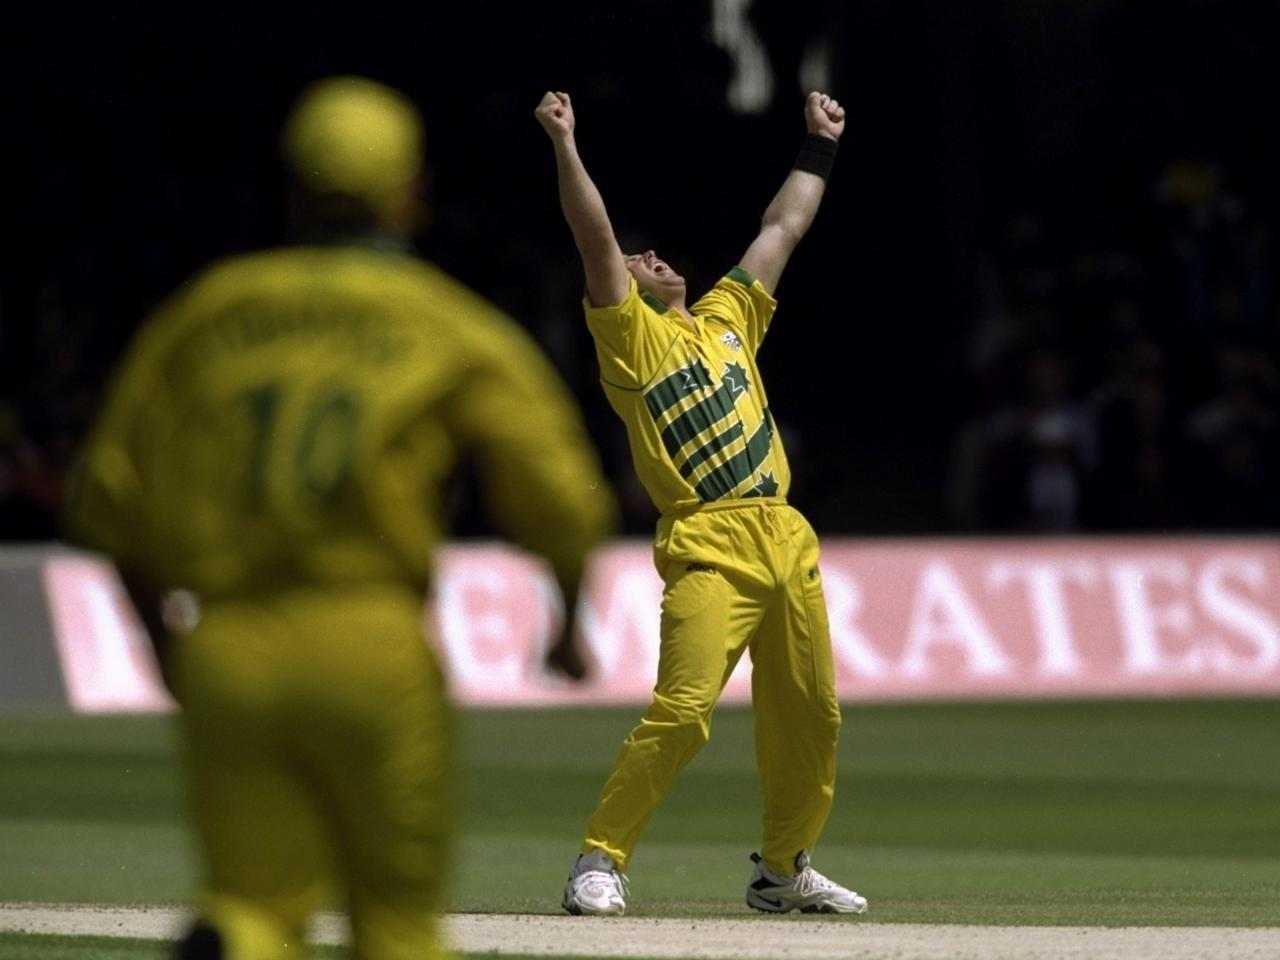 20 Jun 1999:  Shane Warne of Australia celebrates a Pakistan wicket in the Cricket World Cup Final at Lord's in London. Warne took 4 for 33 as Australia won by 8 wickets. \ Mandatory Credit: Clive Mason /Allsport